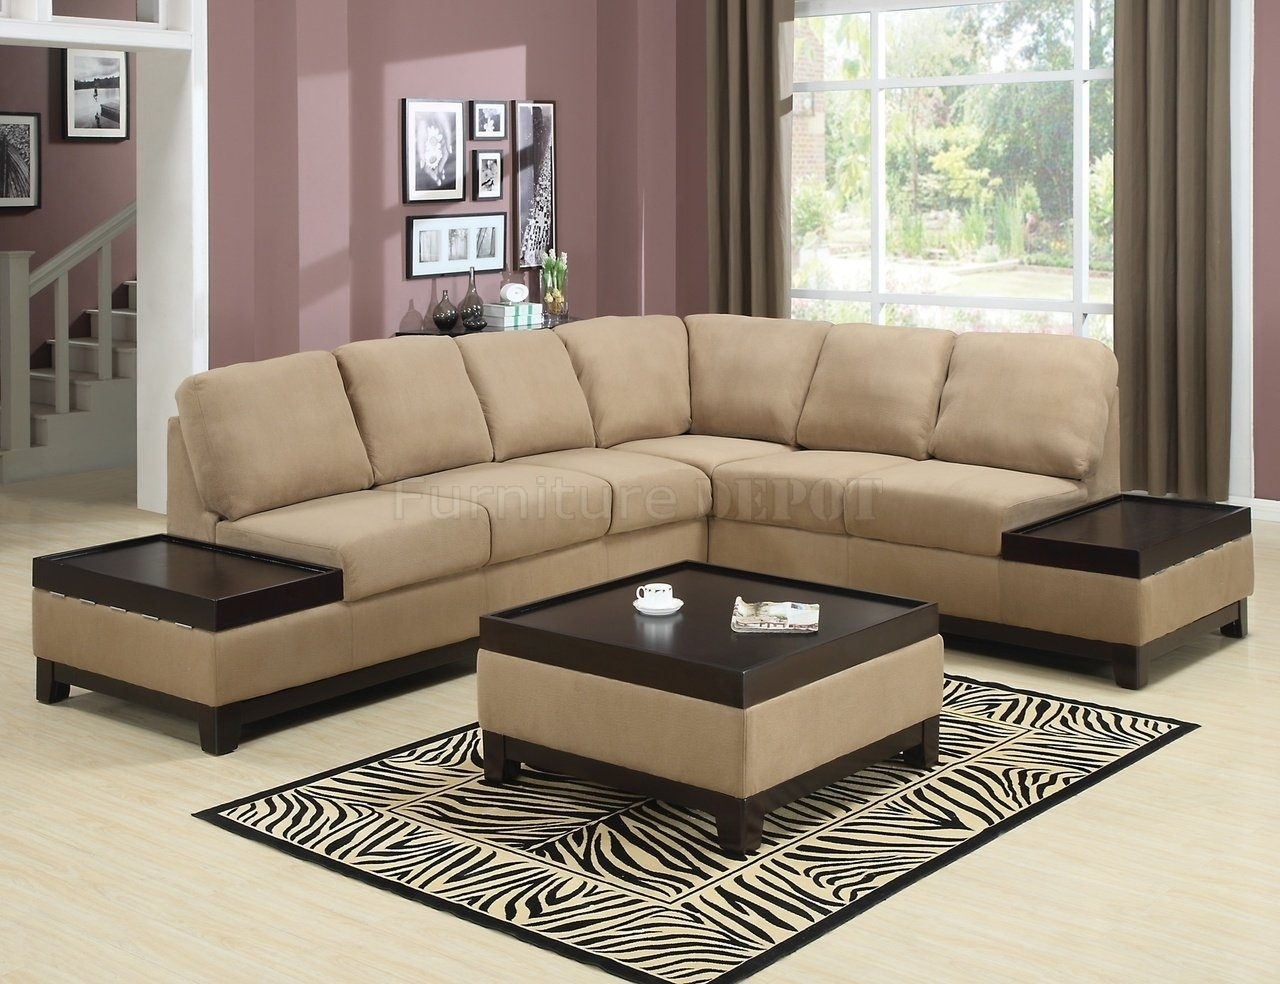 Stylish Sectional Sofas Tulsa Buildsimplehome Throughout Image 8 Of